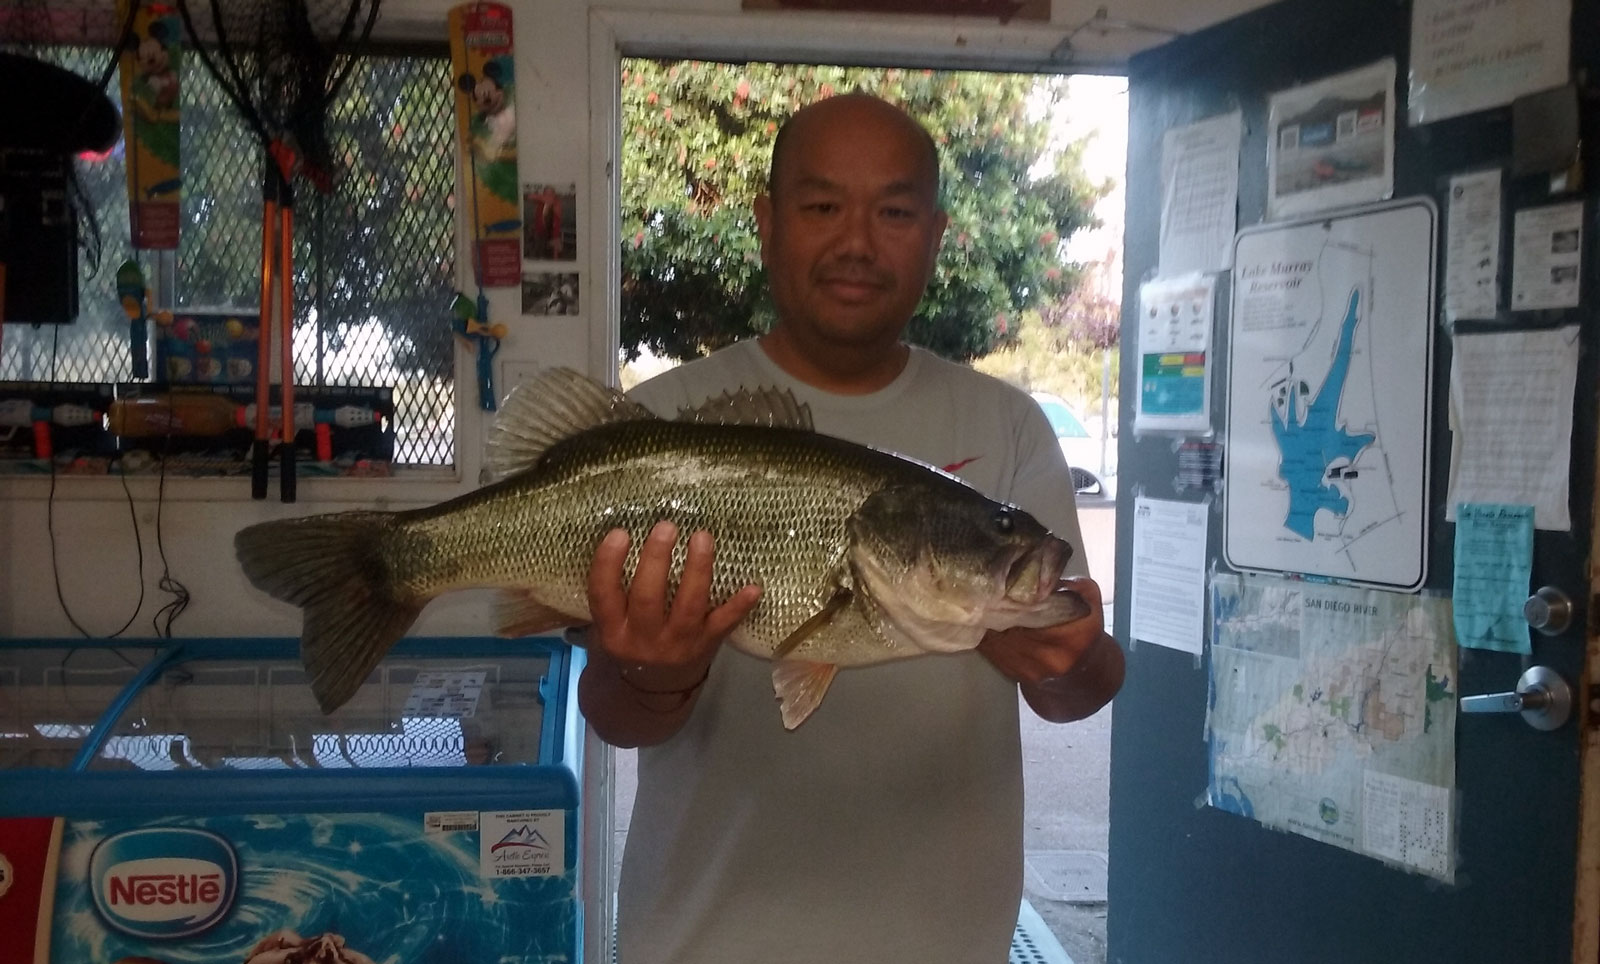 Lake murray fish report 3 12 17 for Lake murray fishing report